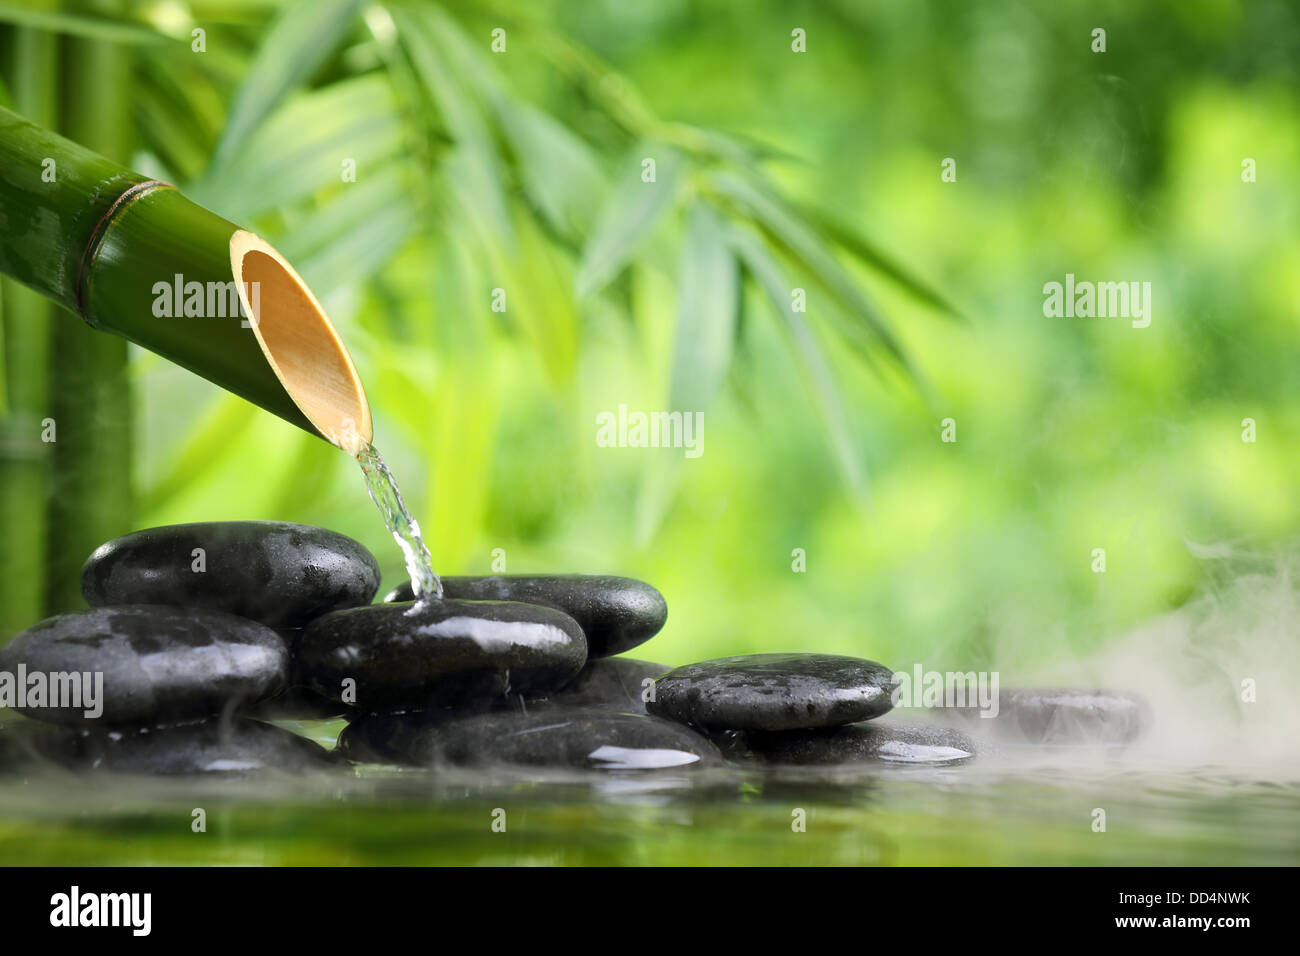 Spa still life with bamboo fountain and zen stone - Stock Image